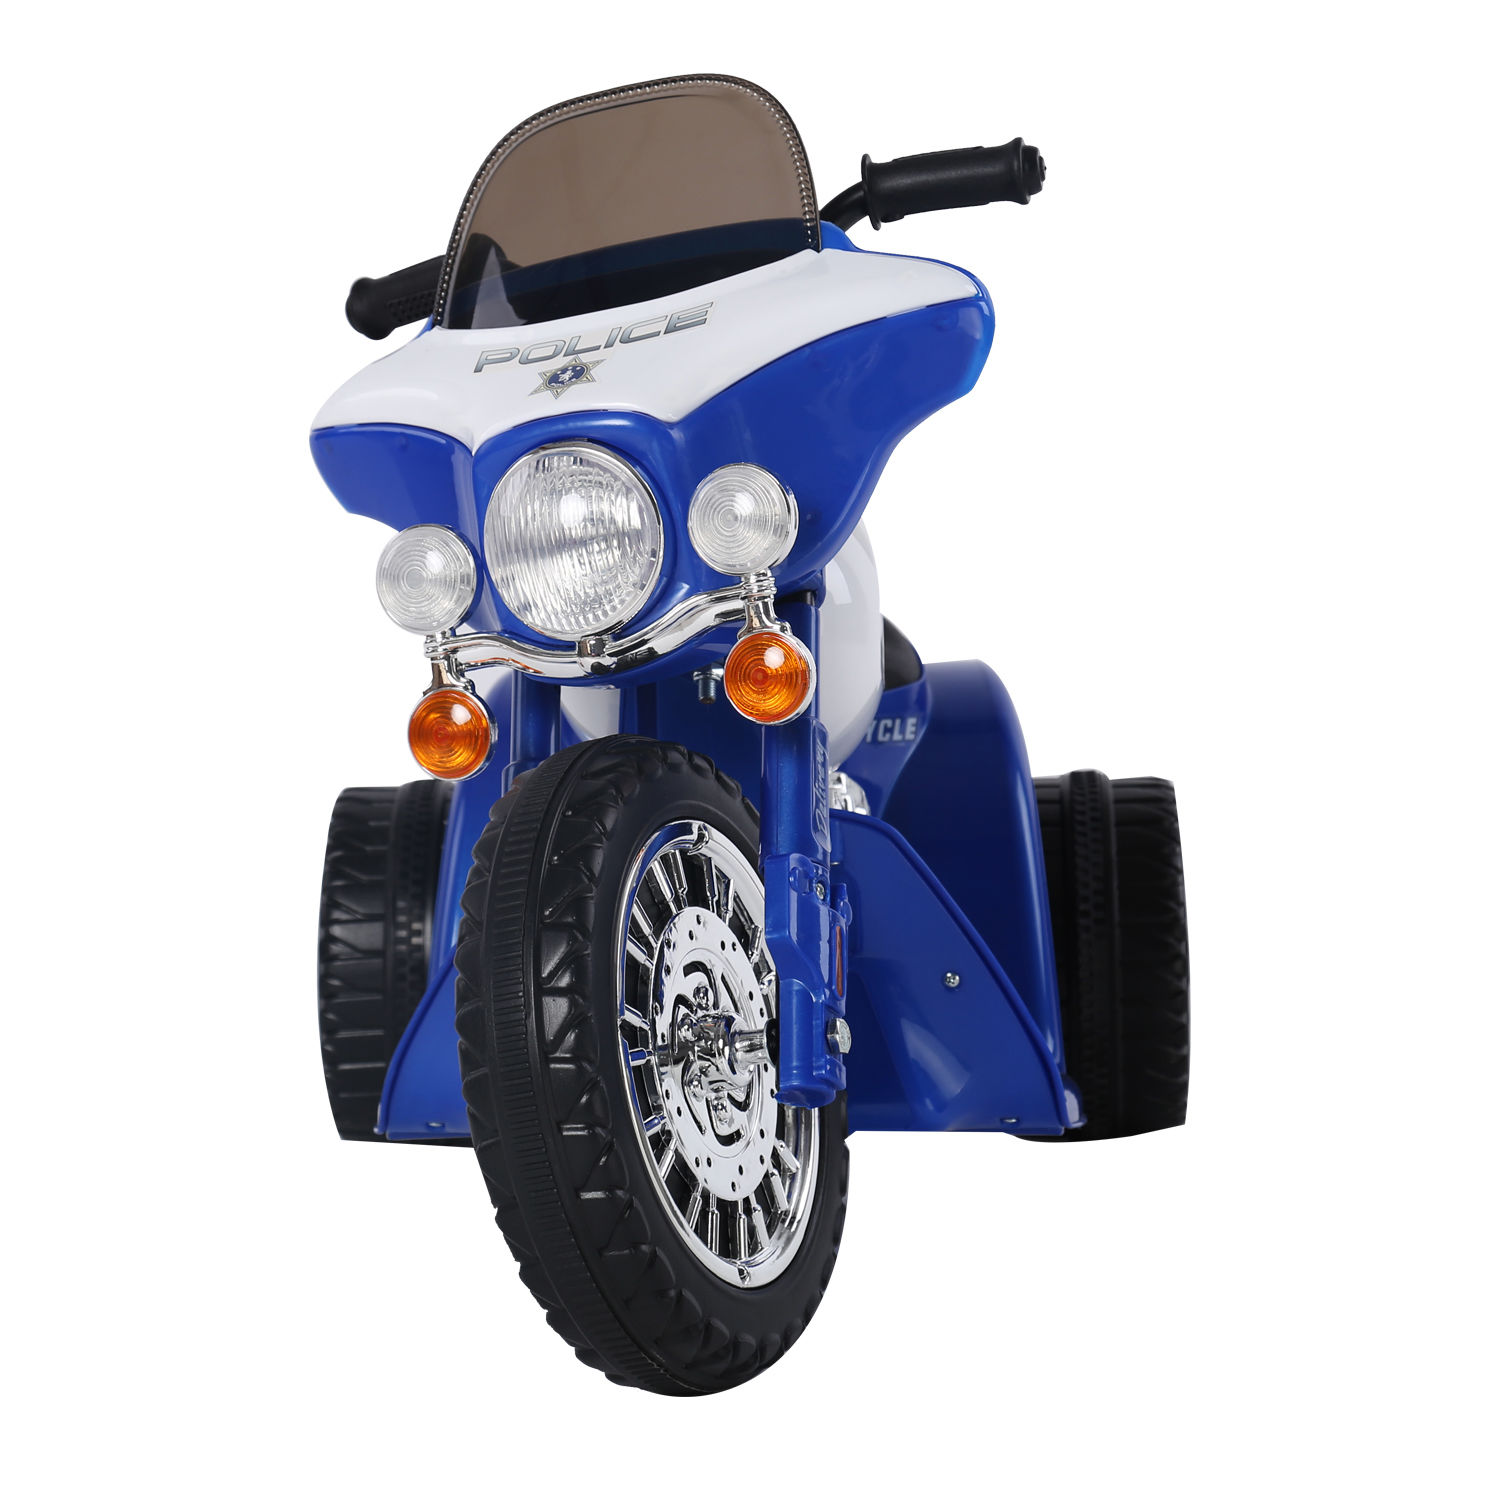 New-Electric-Motorbike-Kids-Ride-On-Toy-Tricycle-Children-Gift-6V-Battery